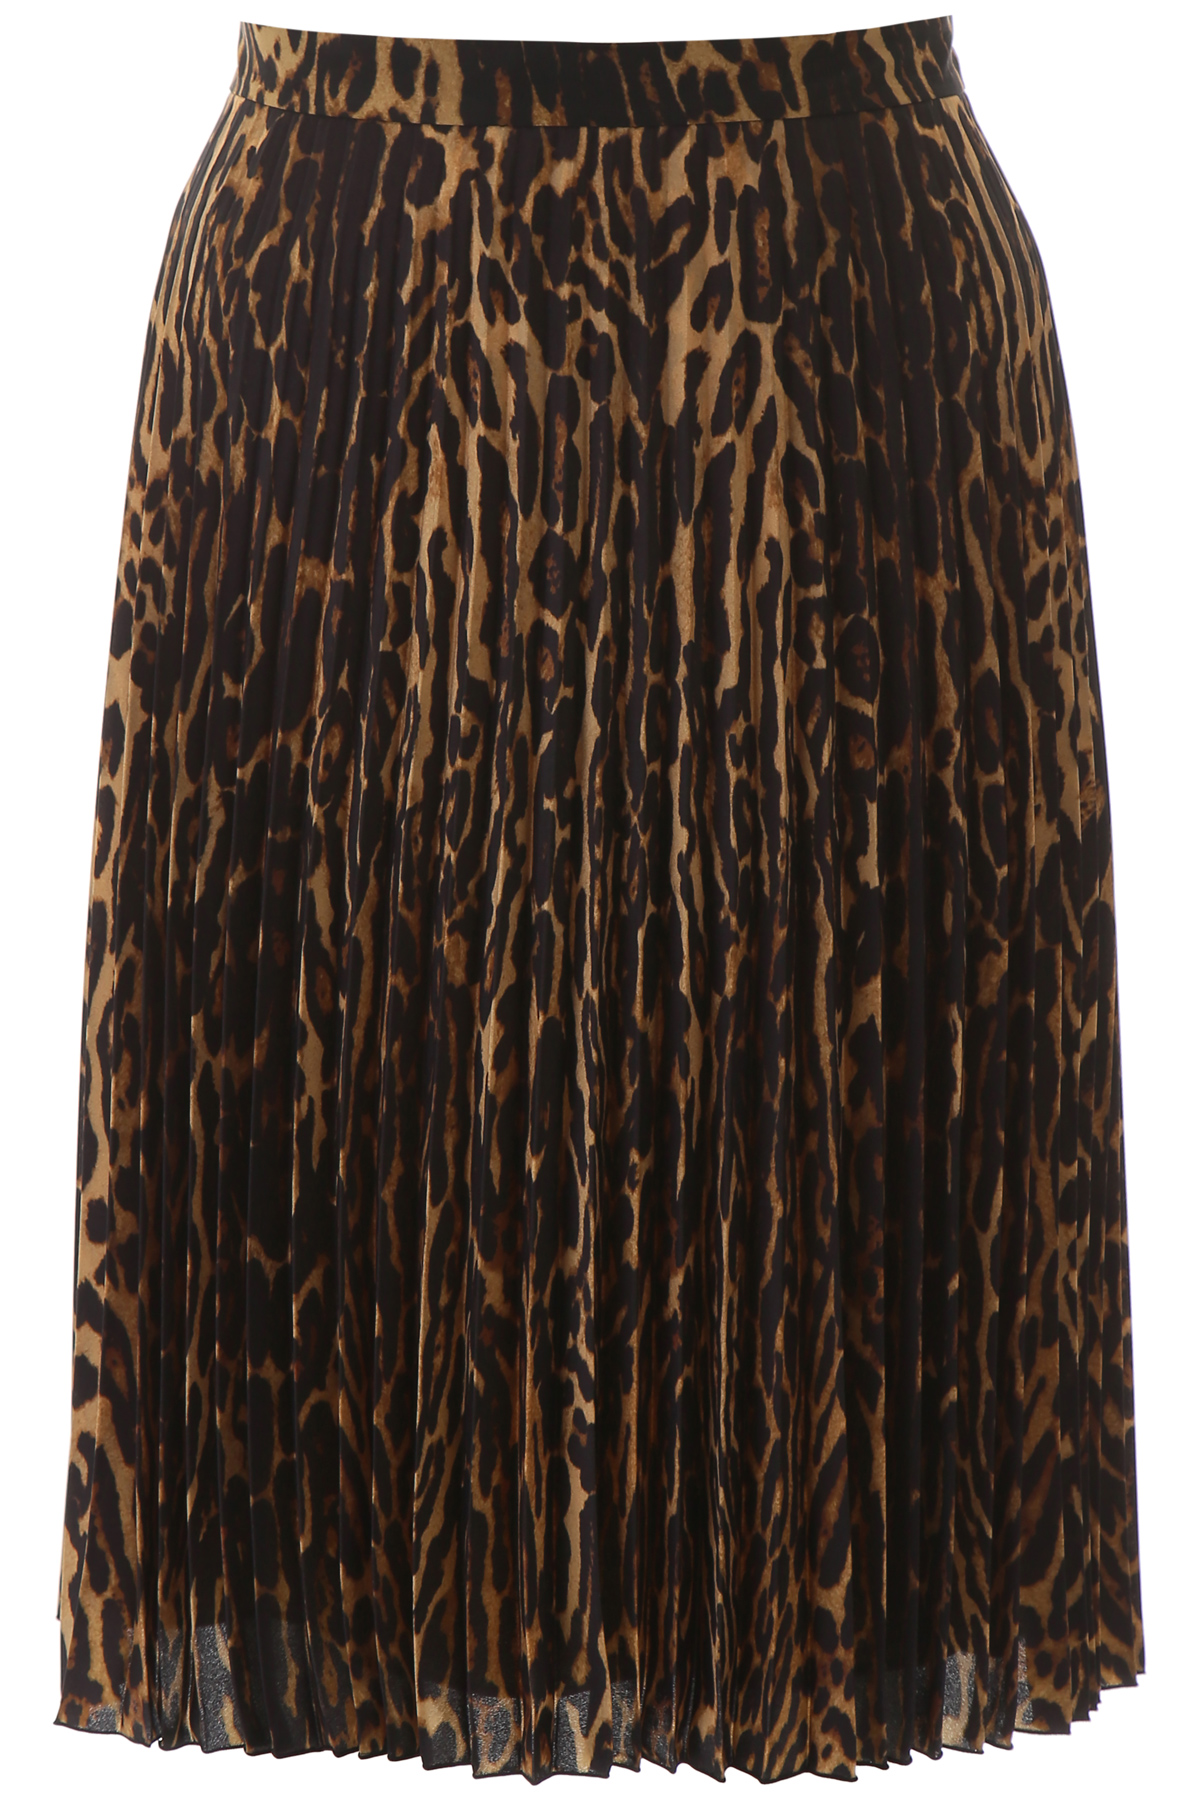 BURBERRY PLEATED ANIMALIER SKIRT 10 Brown, Black